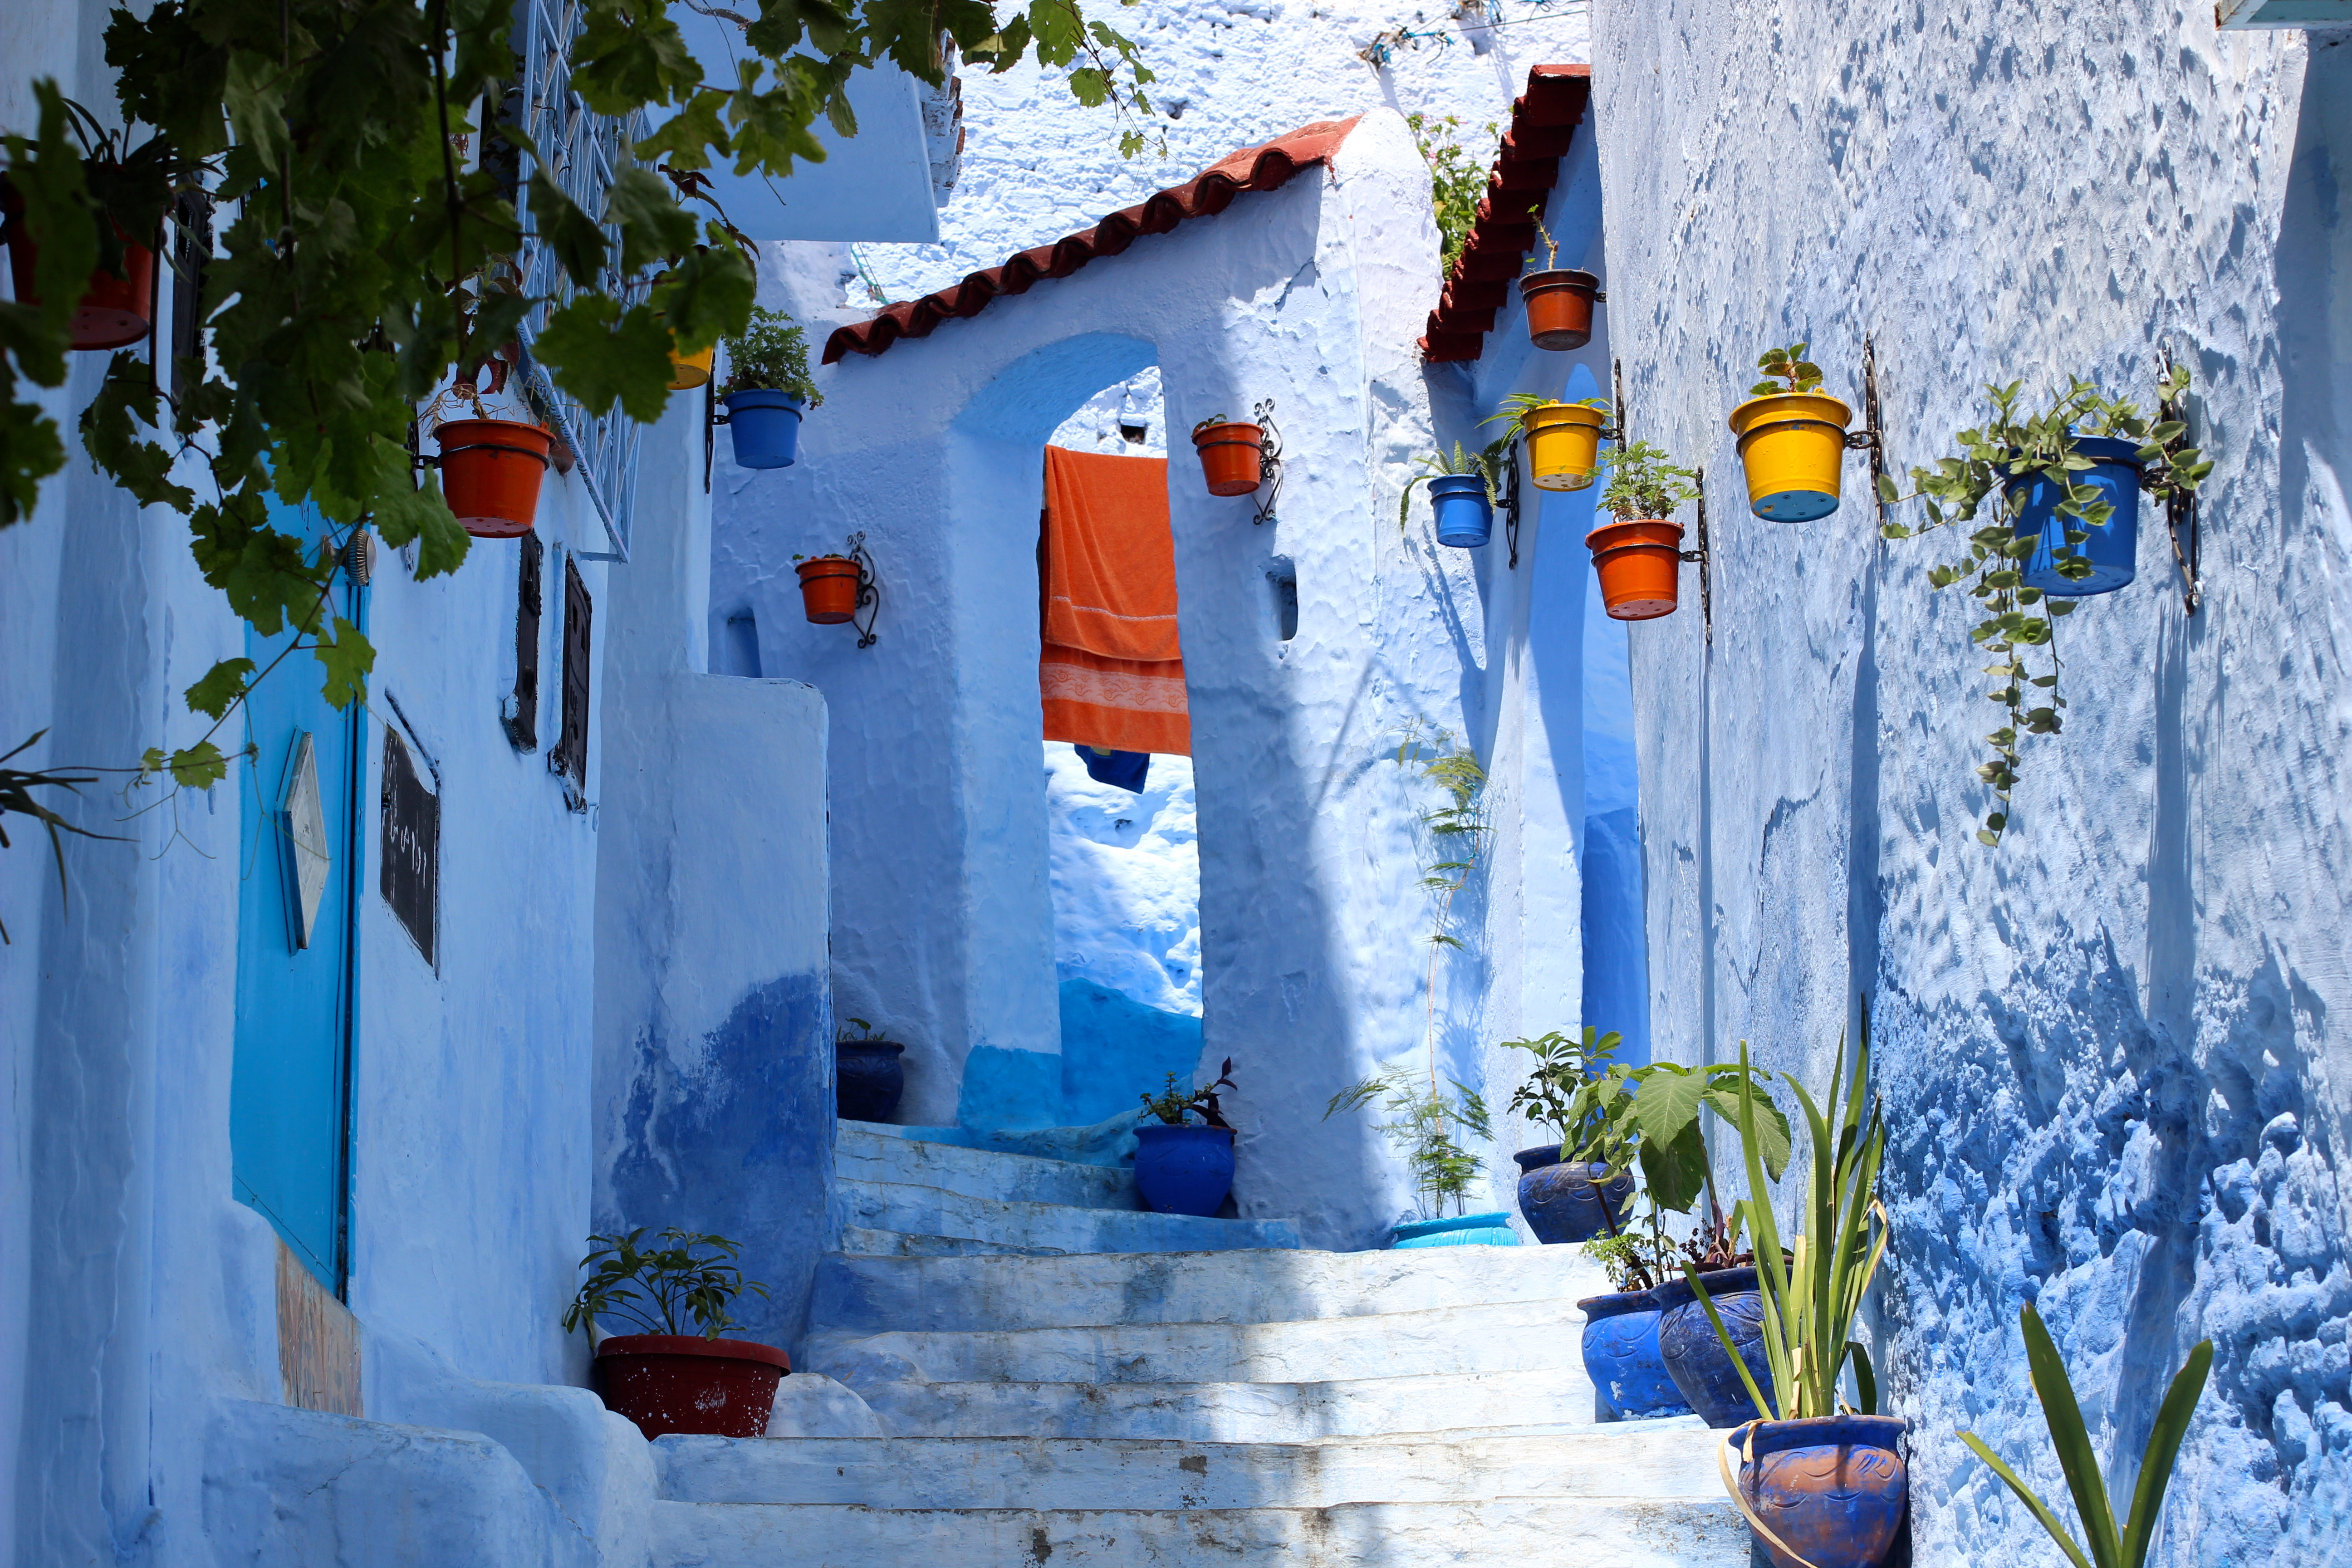 Chefchaouen Morocco  city pictures gallery : Chefchaouen, Morocco III | Sarvodaya